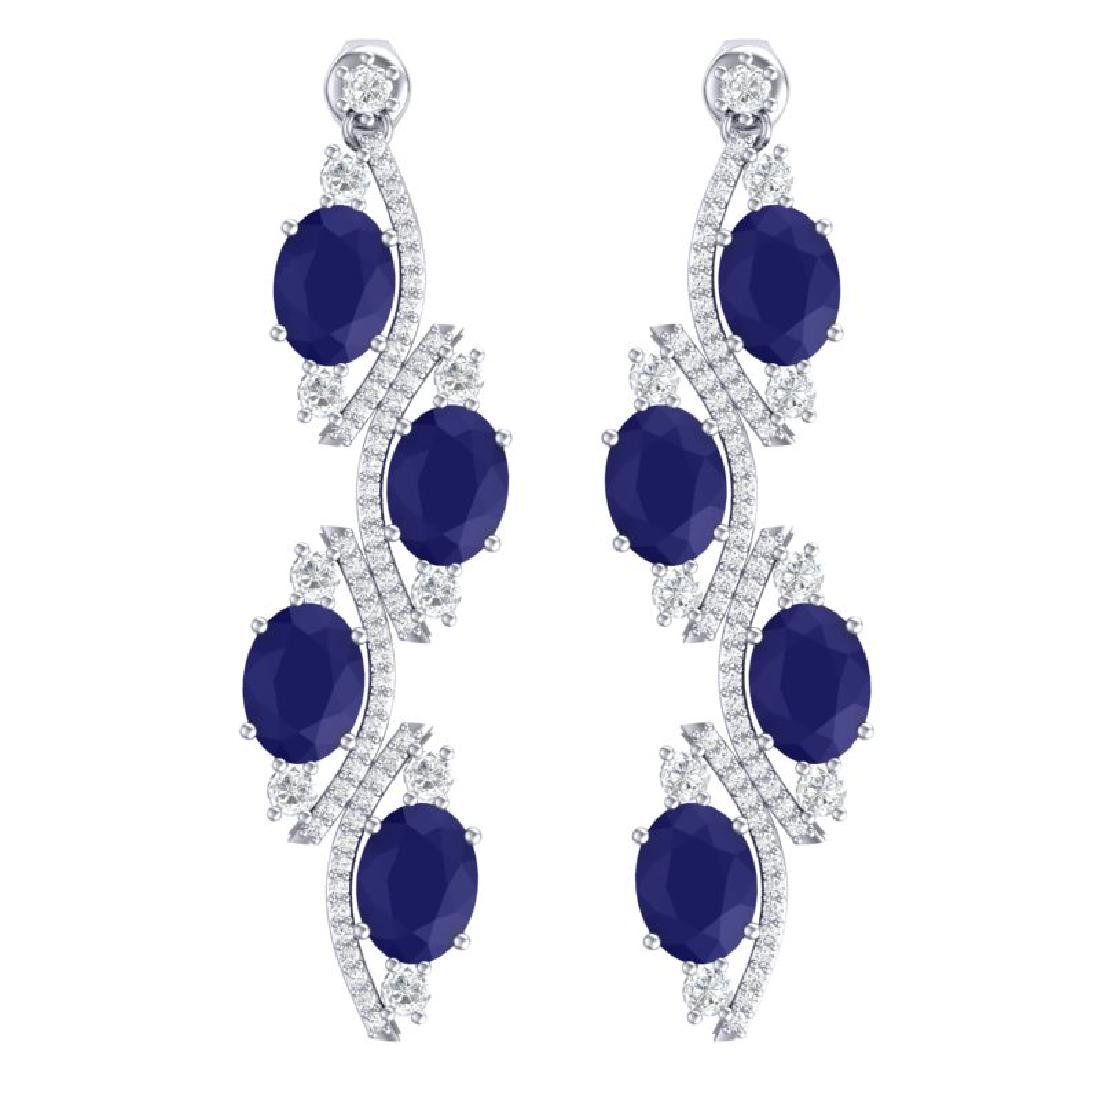 16.12 CTW Royalty Sapphire & VS Diamond Earrings 18K